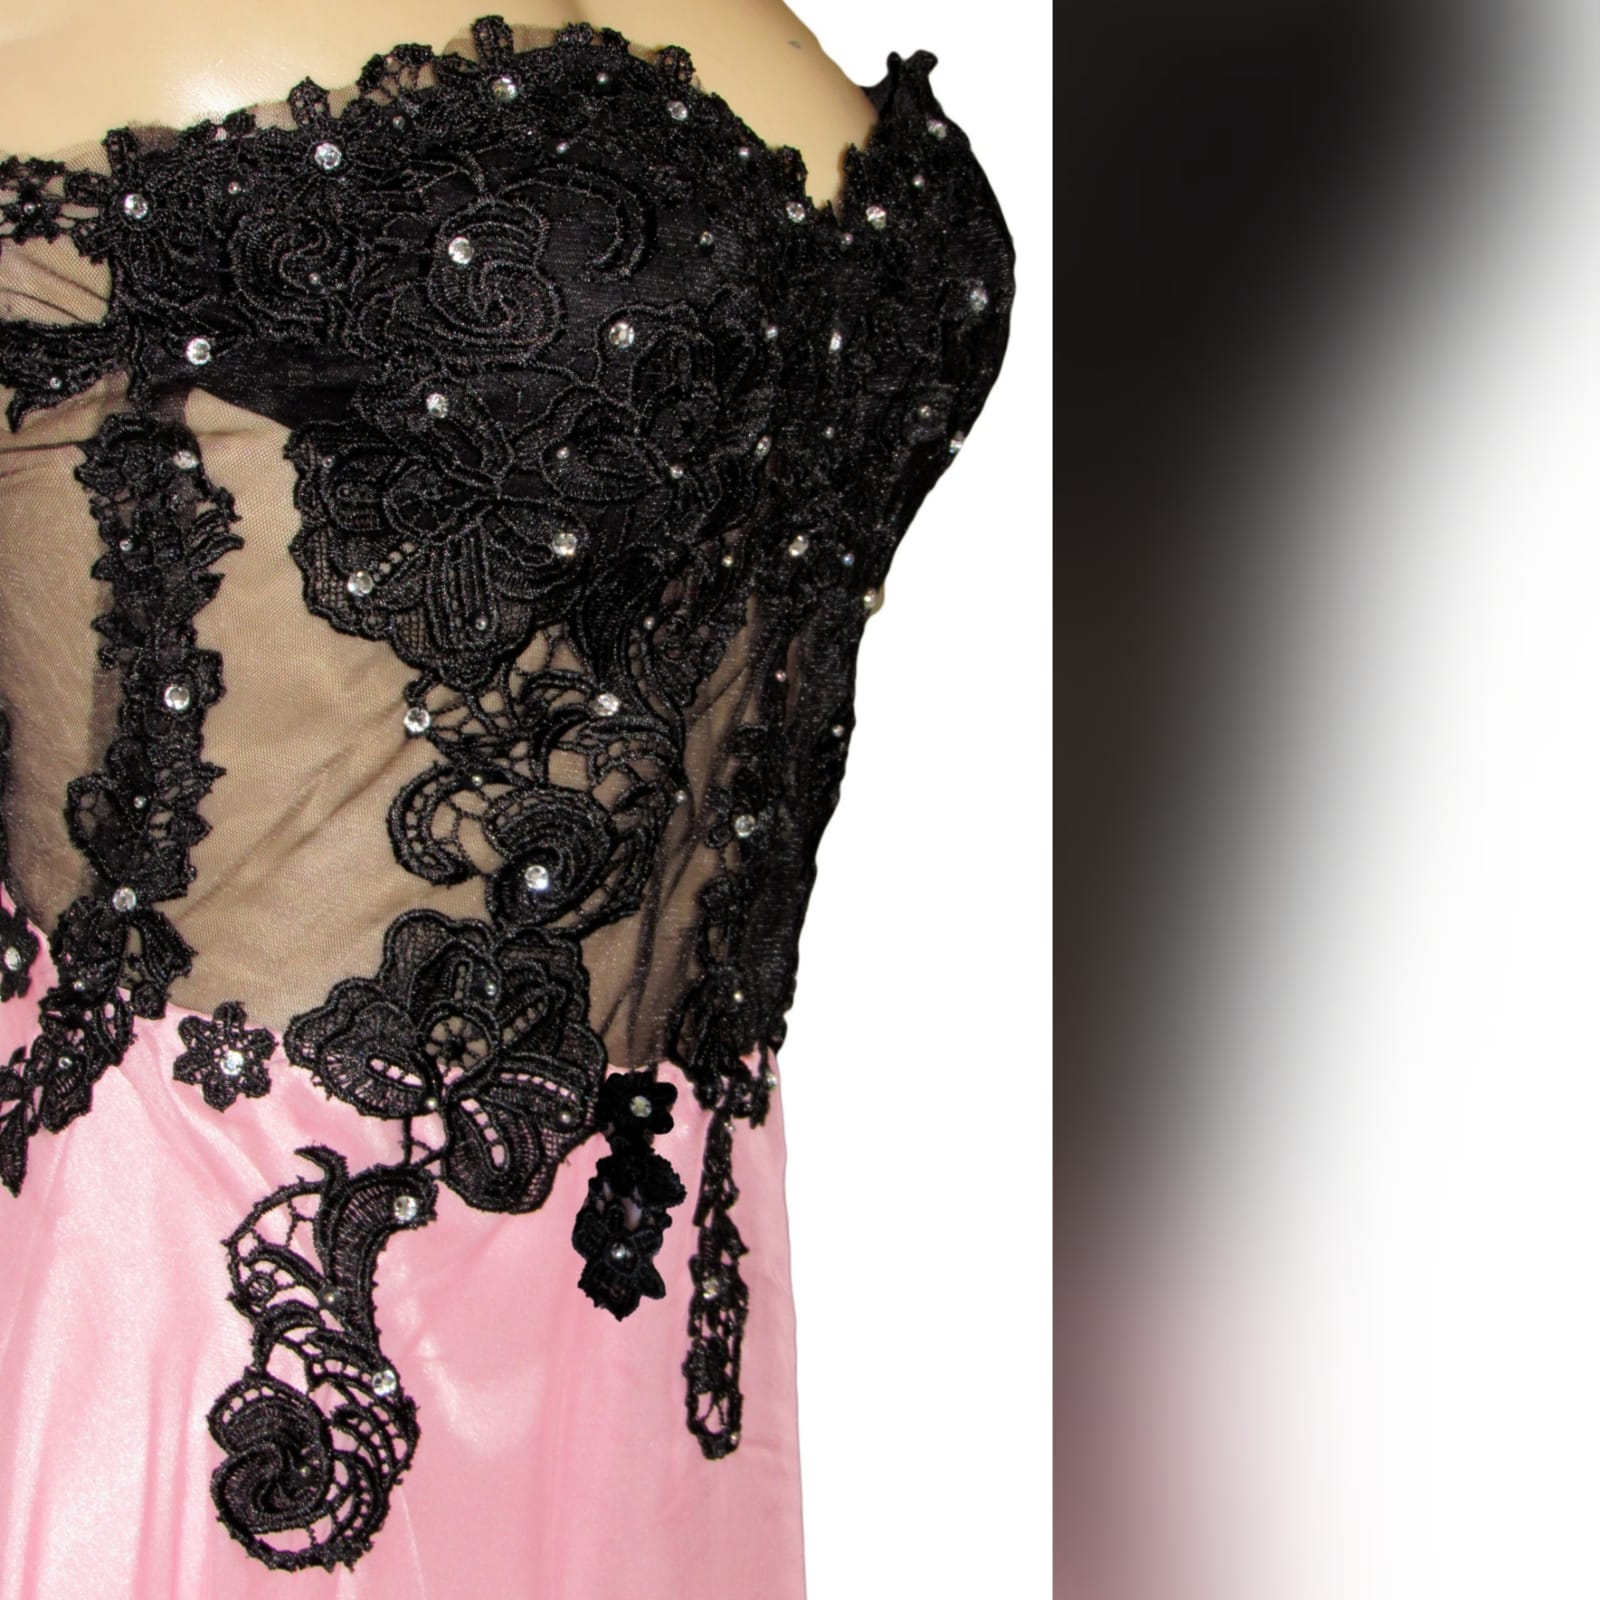 Pink and black illusion lace bodice boob tube prom dress 3 pink and black illusion lace bodice, boob tube prom dress detailed with silver beads.